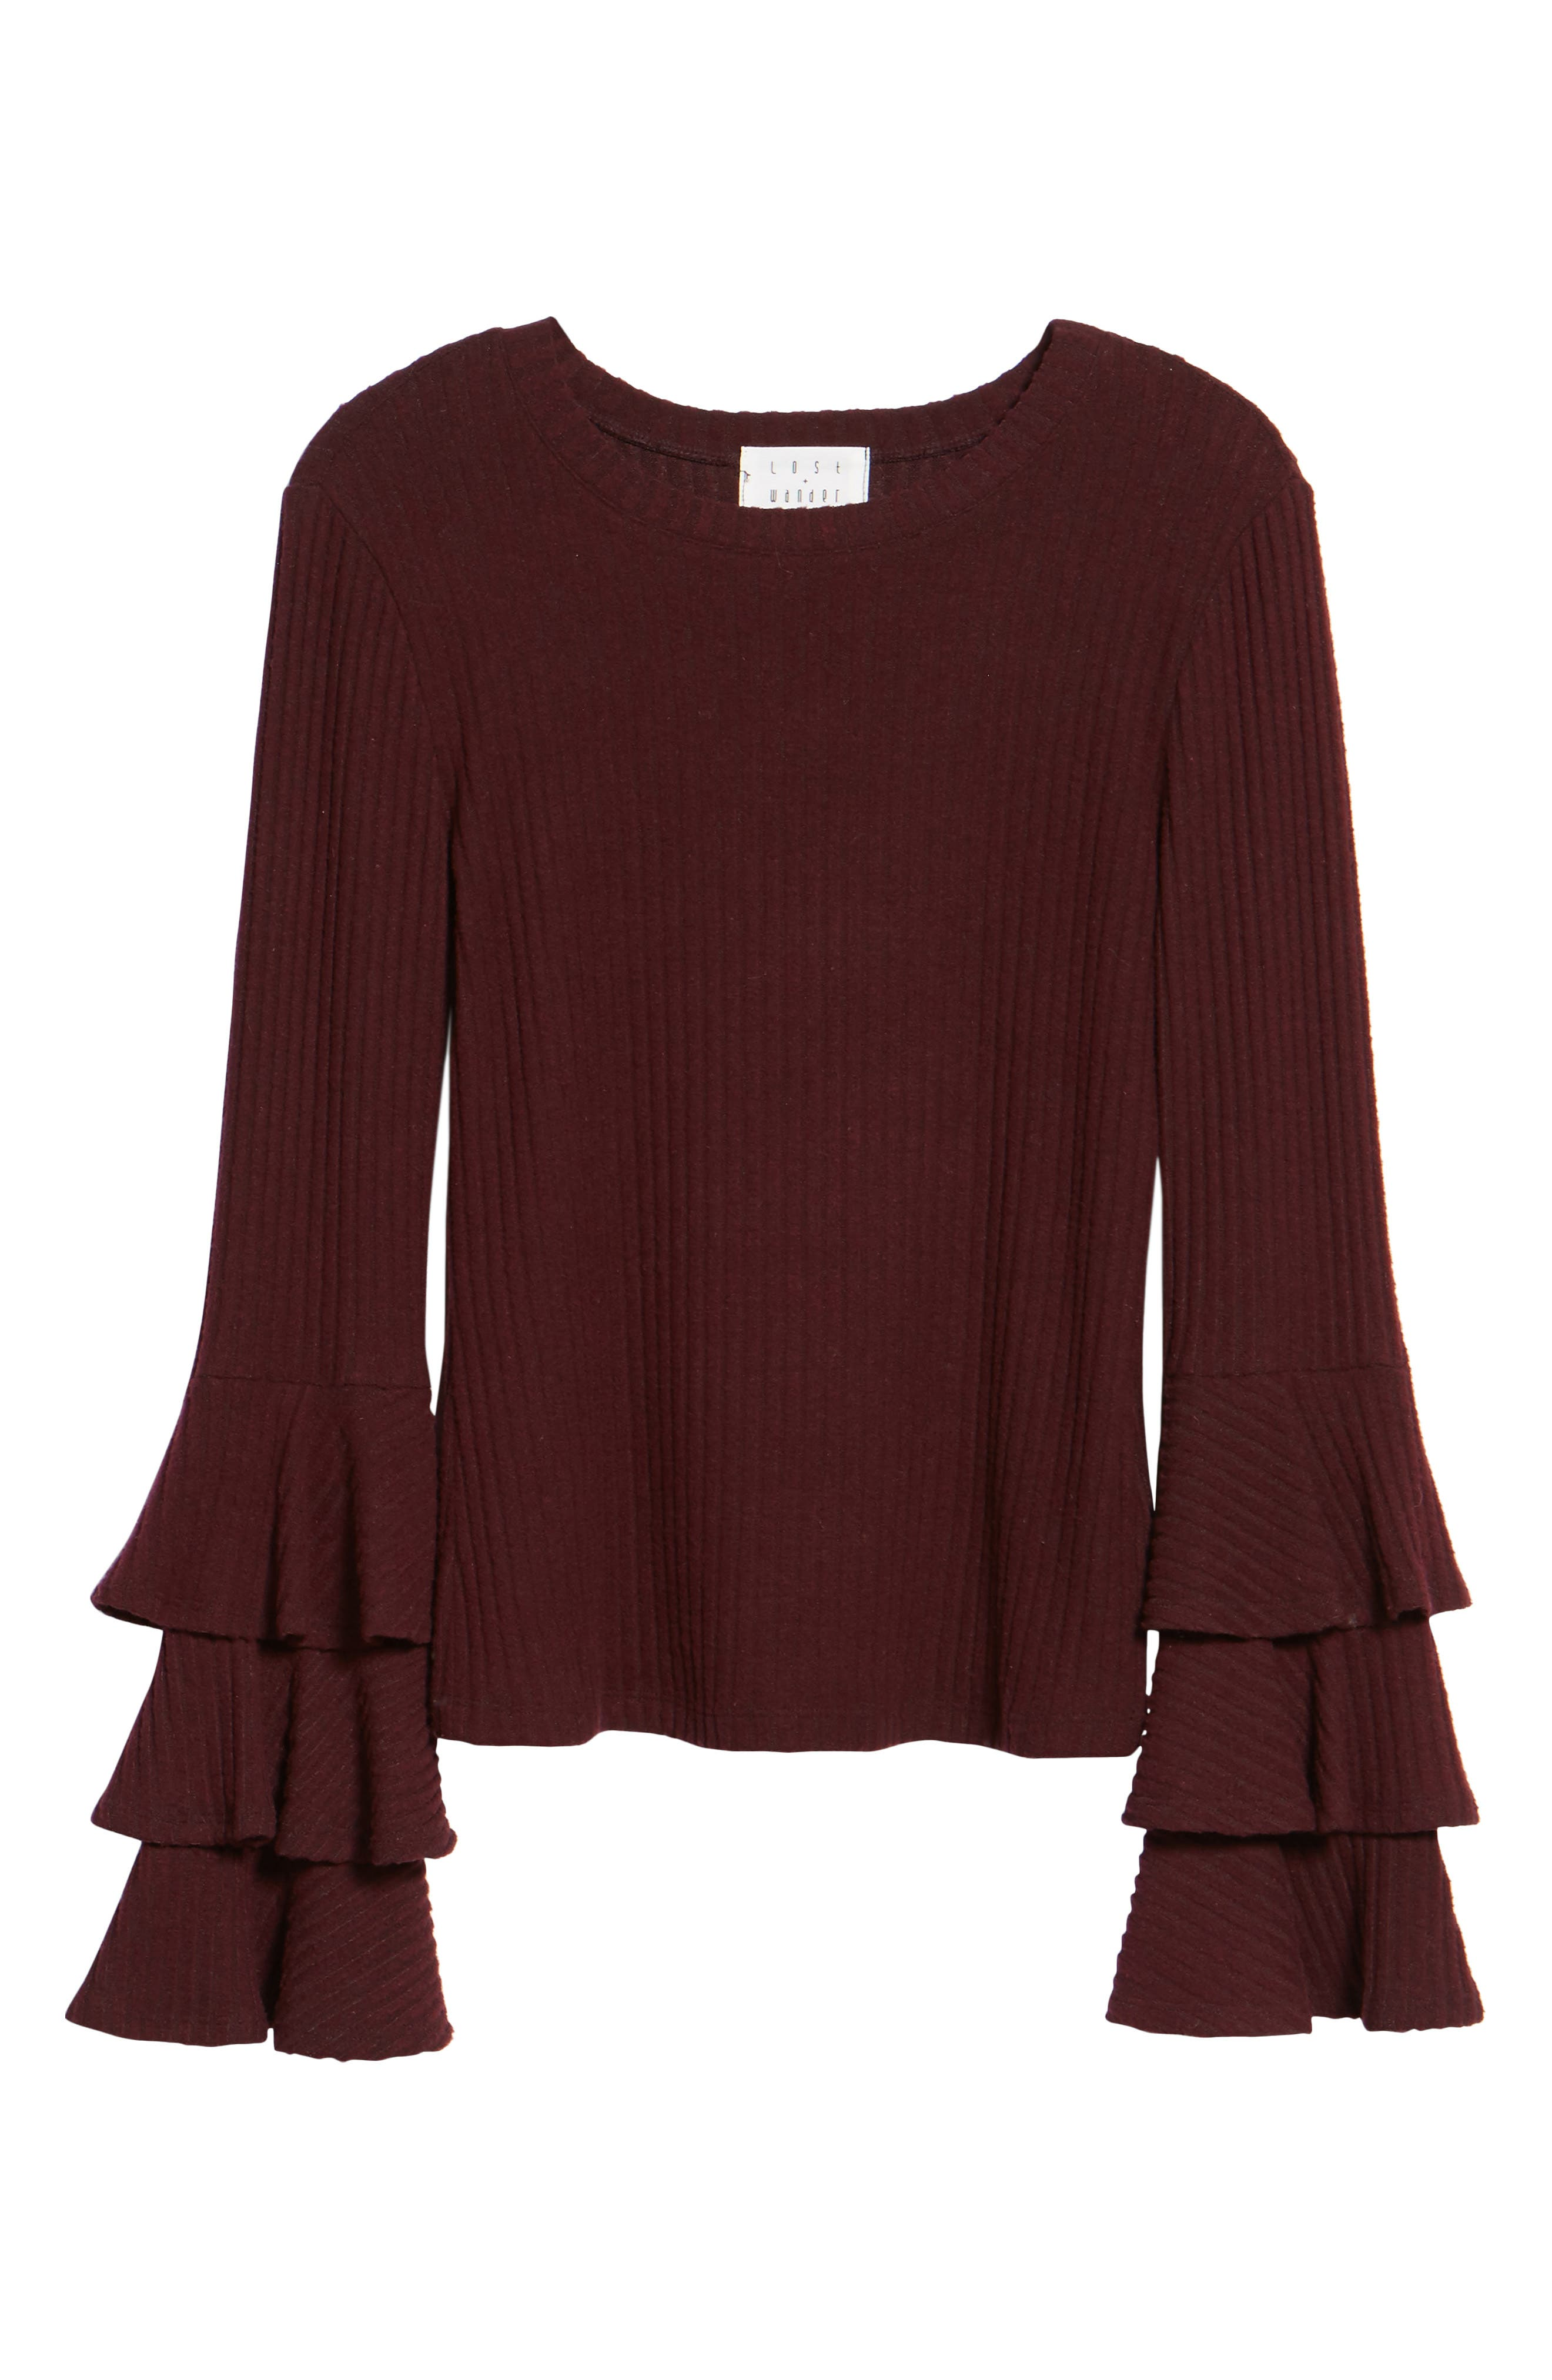 Marie Ruffle Sleeve Top,                             Alternate thumbnail 6, color,                             930